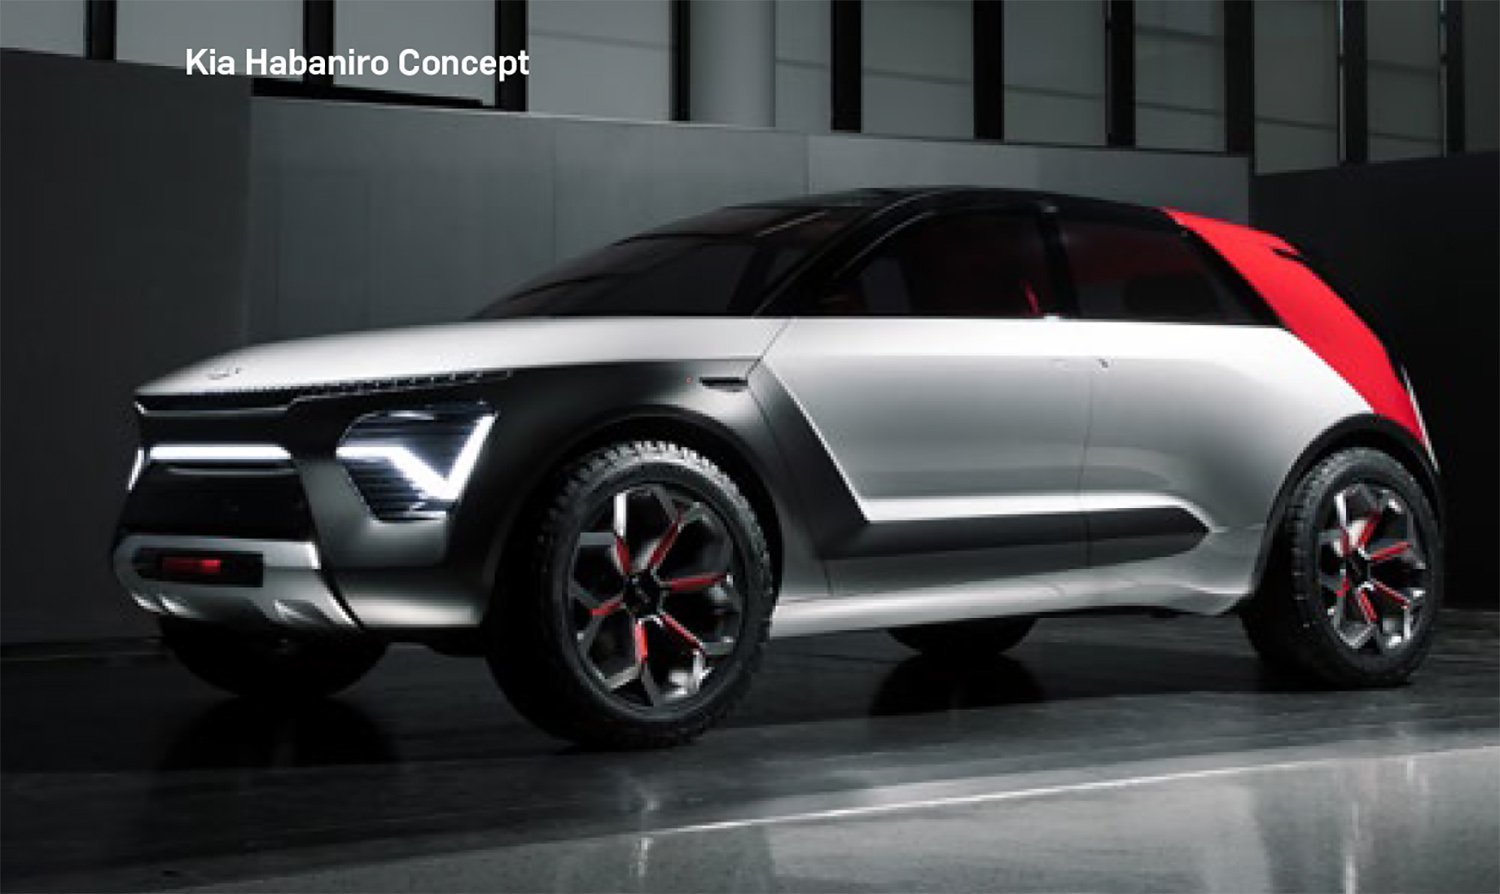 Kia Habaniro Concept Leaked on NY AutoShow Newsletter